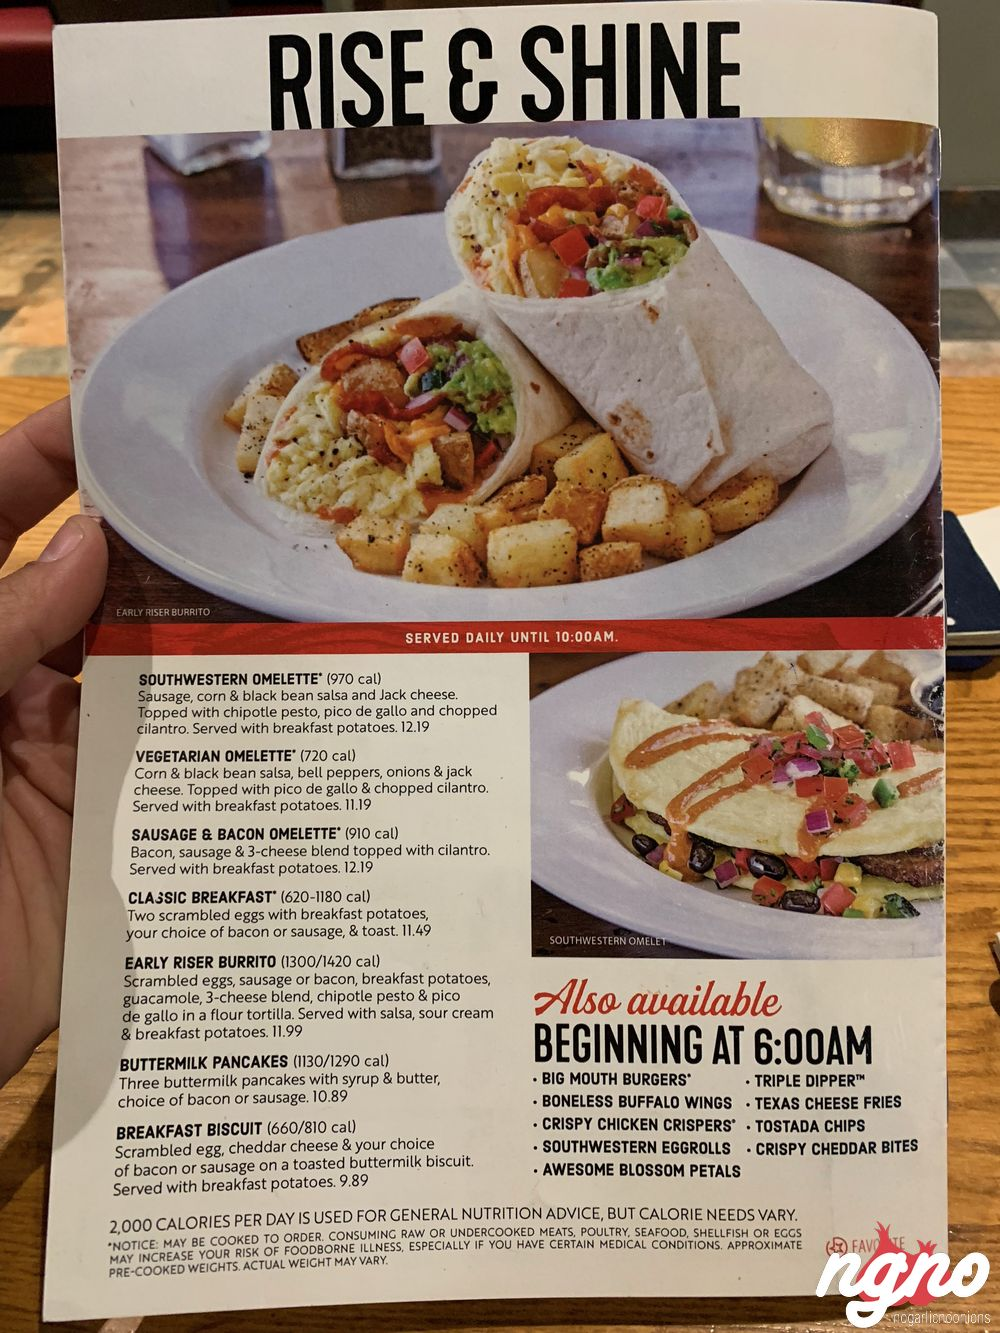 Chili's at The Airport in Las Vegas Serves Tasty American Food